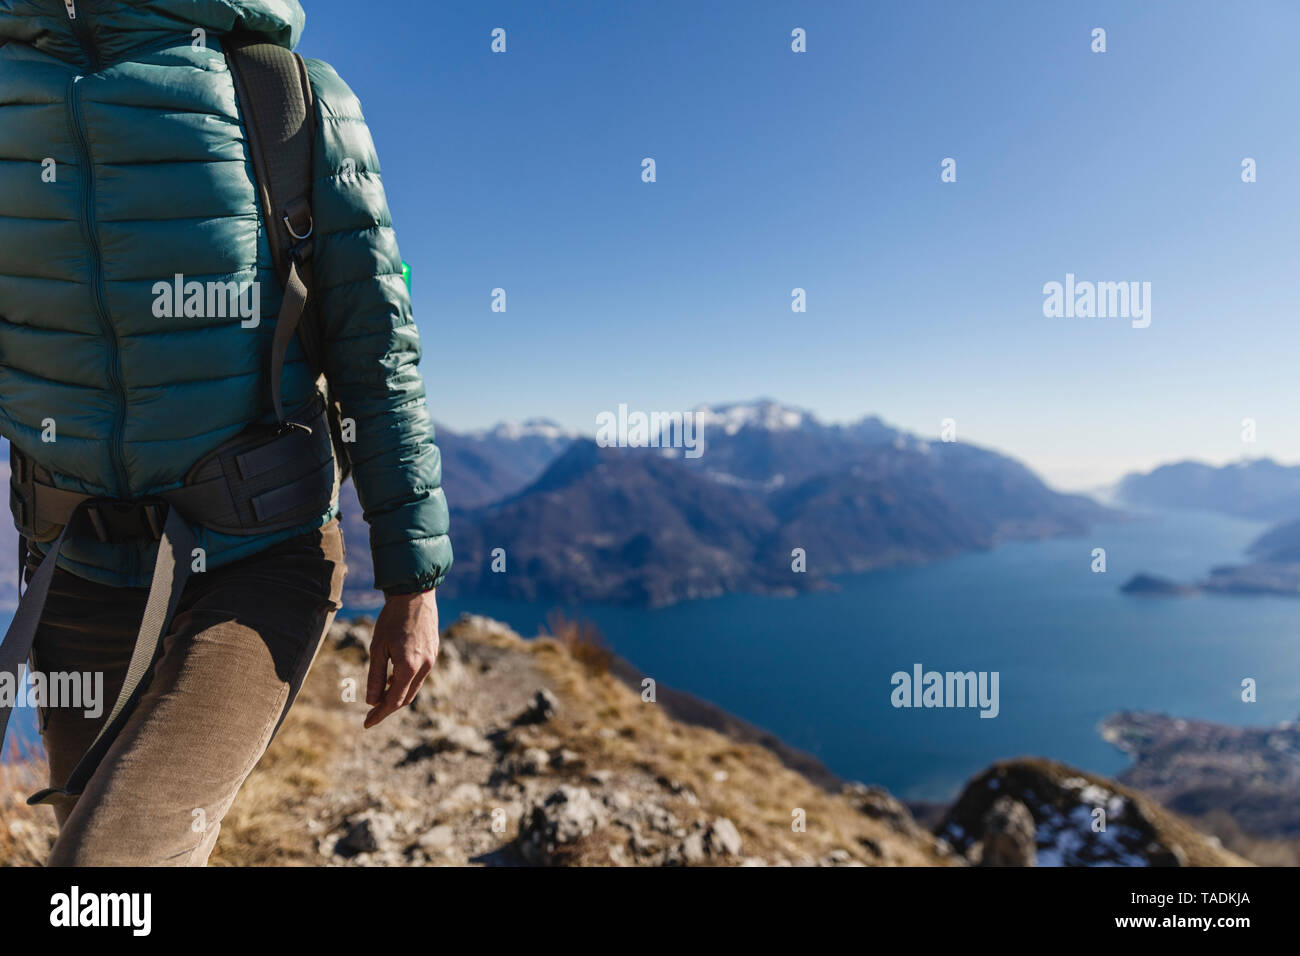 Italy, Como, Lecco, woman on a hiking trip in the mountains above Lake Como - Stock Image